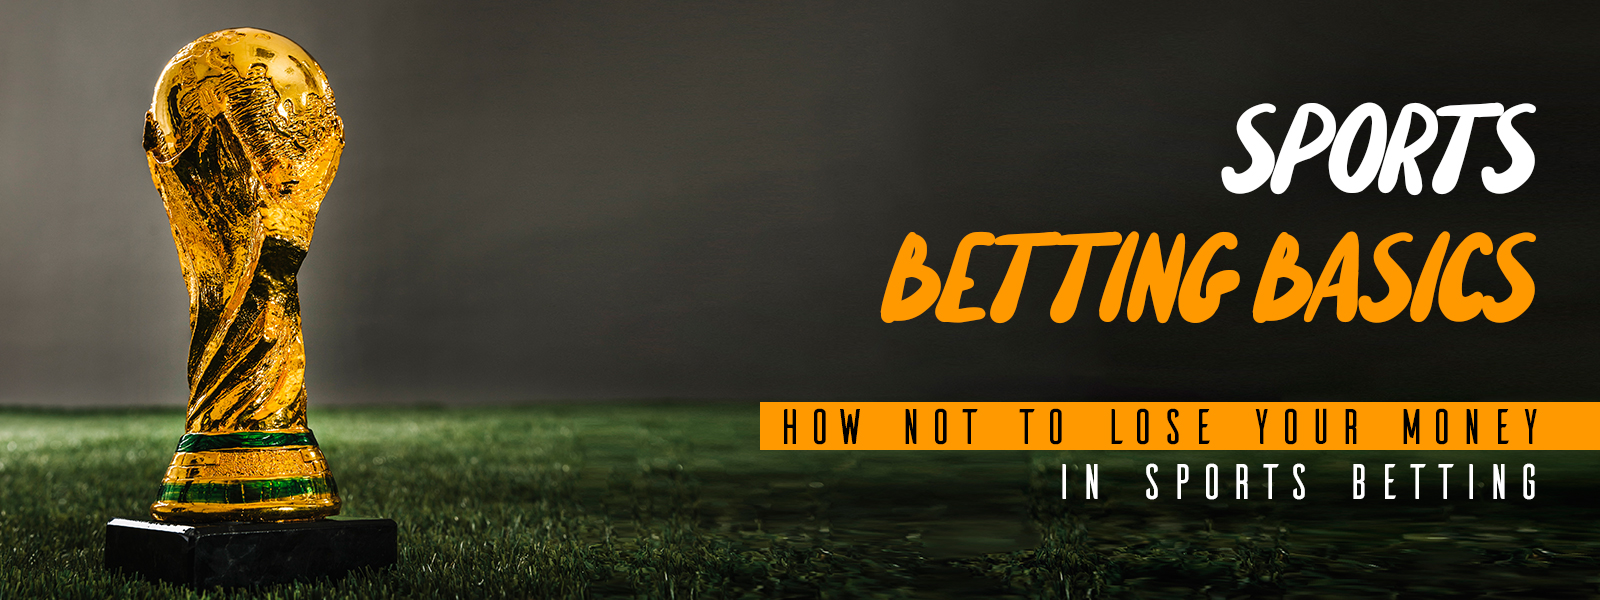 3 Easy Steps To Stop Losing Money In Sports Betting